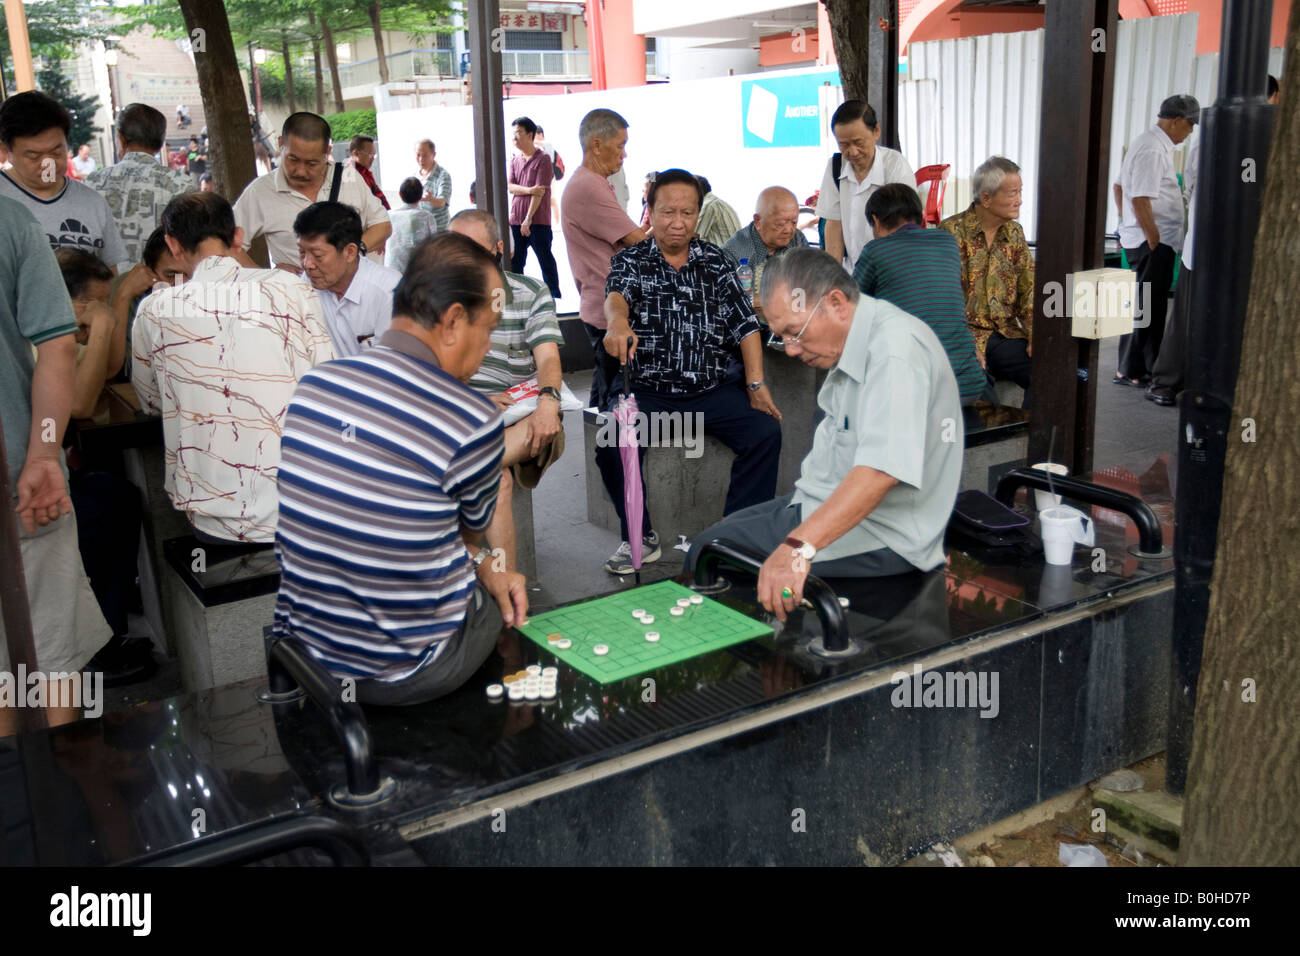 Chinatown, Chinese district, pensioners playing a board game, Singapore, Southeast Asia - Stock Image